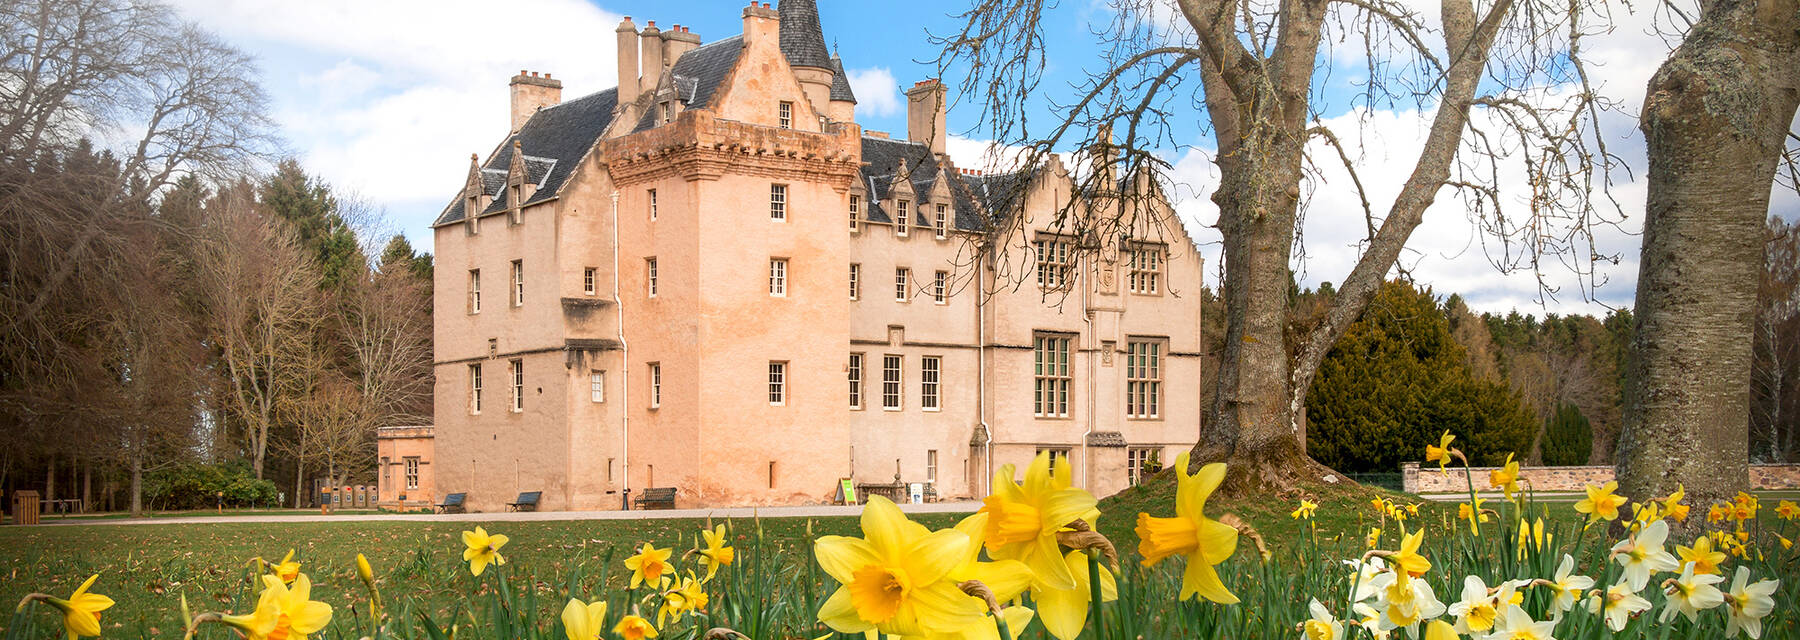 Daffodils at Brodie Castle